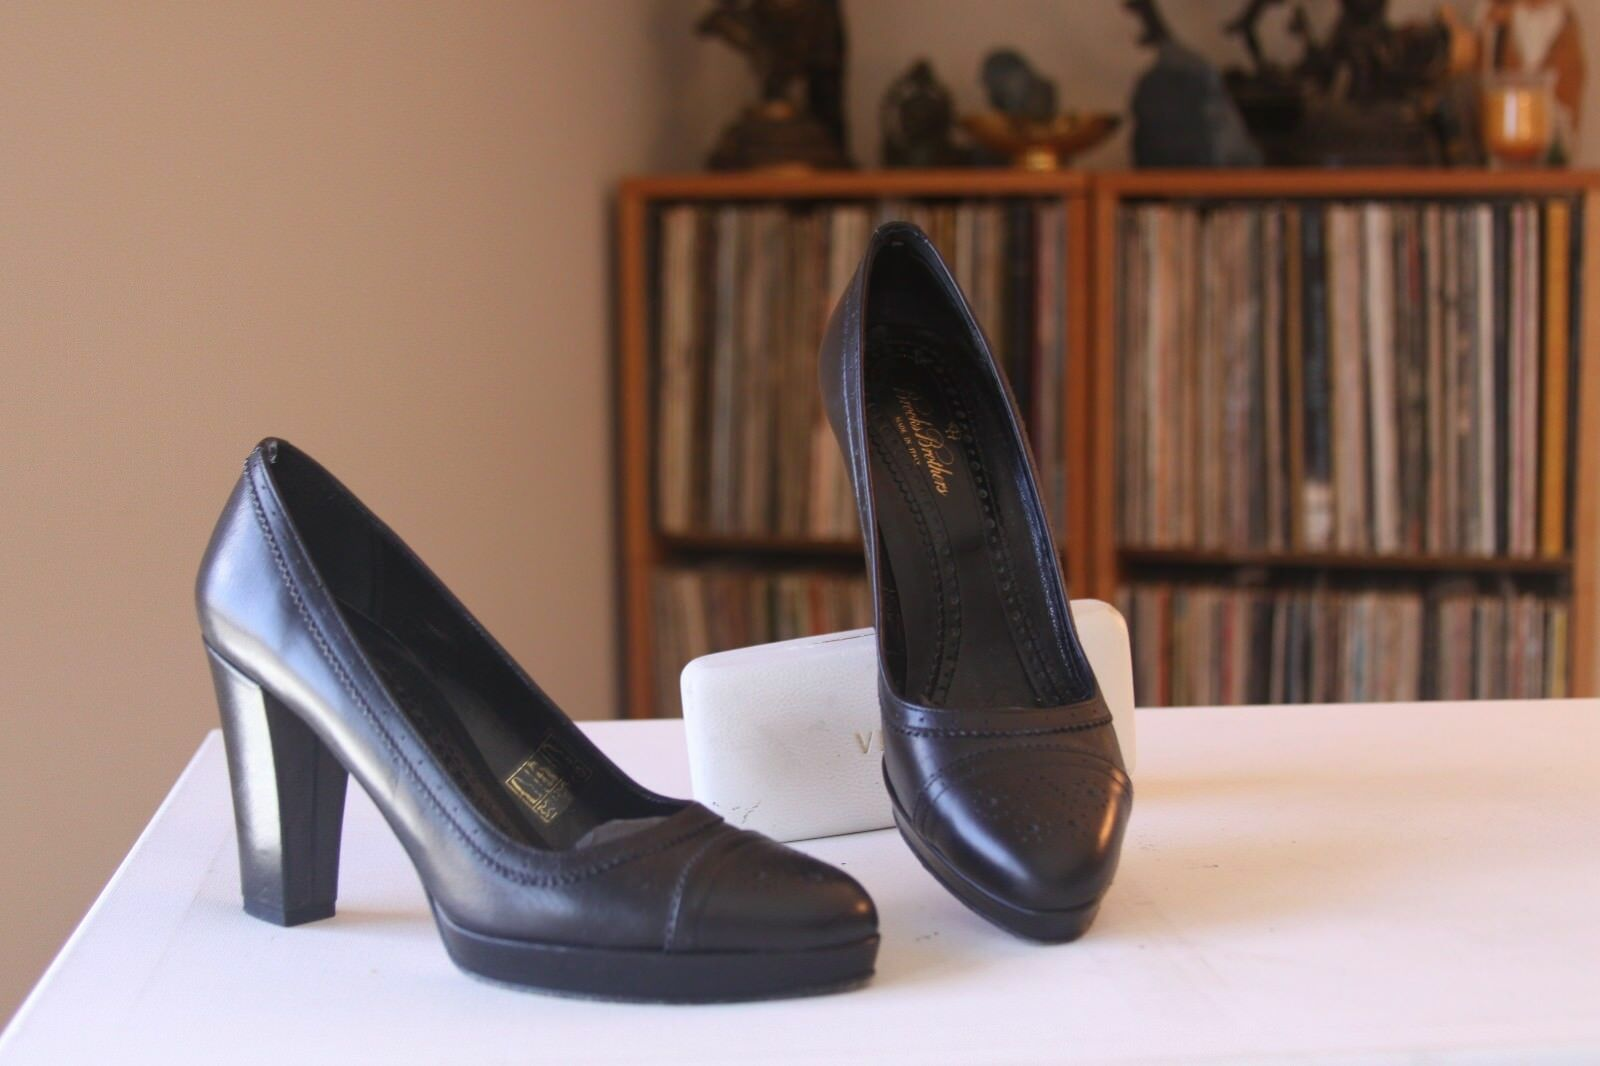 Brooks Brothers Black Leather 3 3 Leather 1/2 Inch Heel Brogue Pumps Size 6 Made In Italy 9d5344